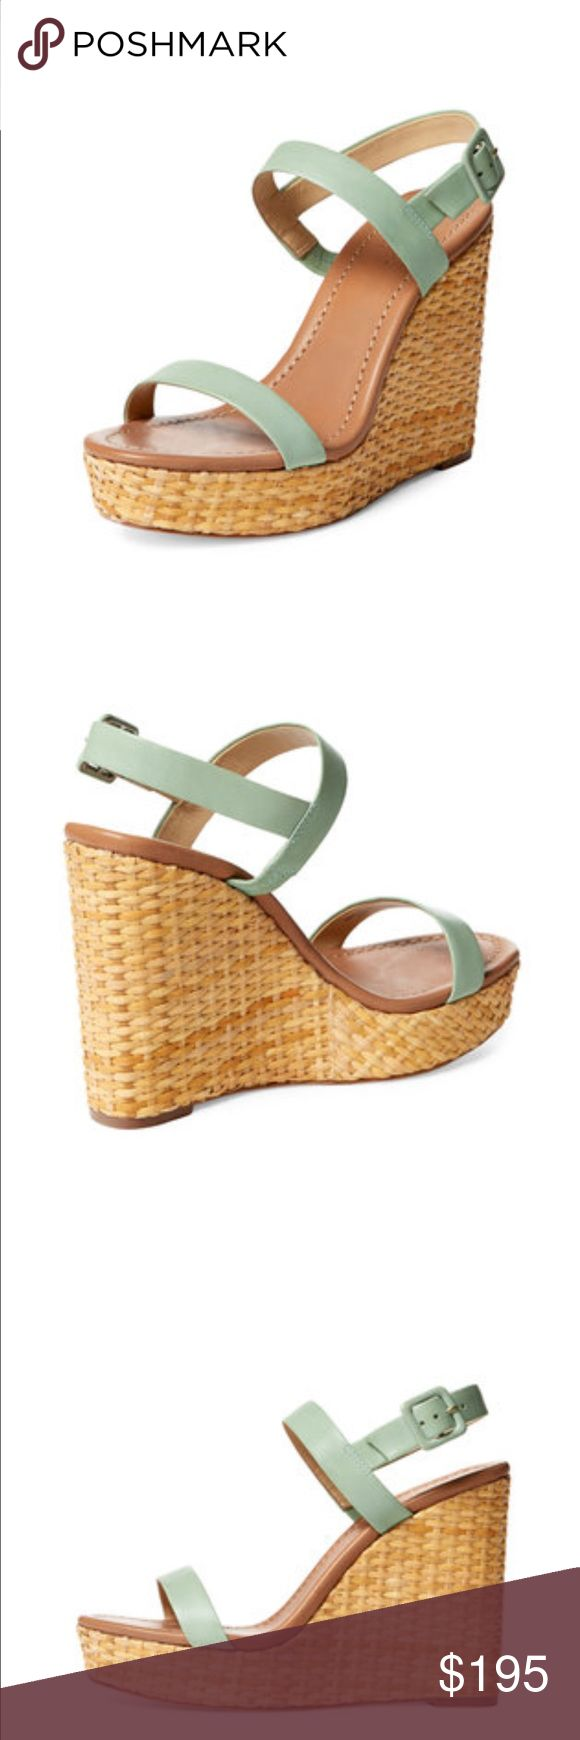 "NIB: Kate Spade Dance Woven Wedge This high wedge sandal has a leather upper with an adjustable ankle strap. It has a leather insole and sole with a woven wedge.  The height is 5"" with a platform sole of 1 1/2"". kate spade Shoes Sandals"